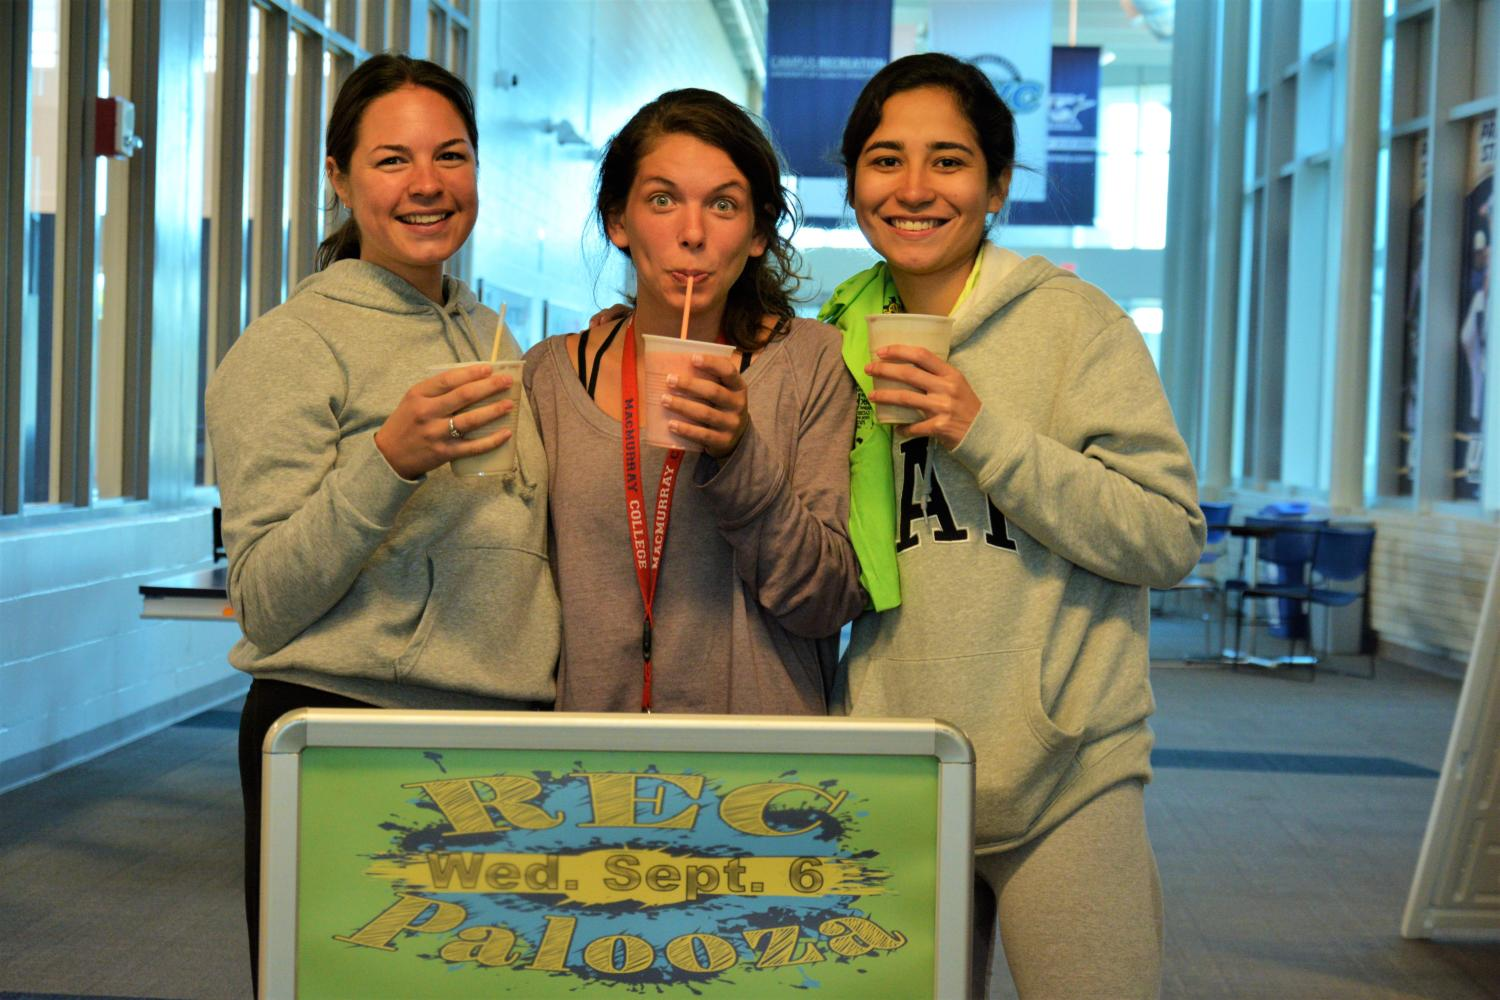 Attendees+enjoy+smoothies+at+REC-a-Palooza